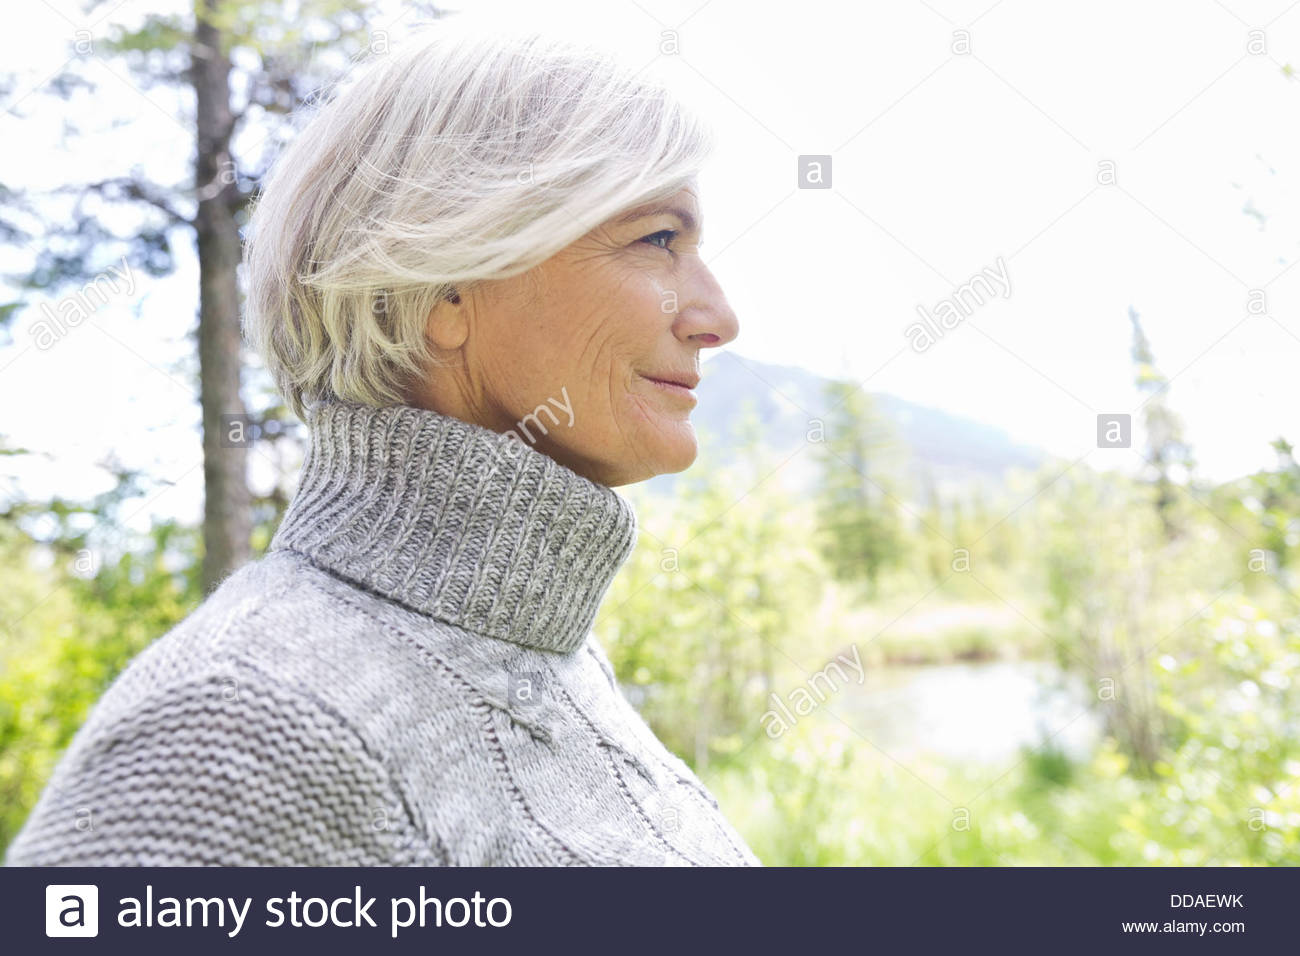 Profile shot of mature woman in forest - Stock Image